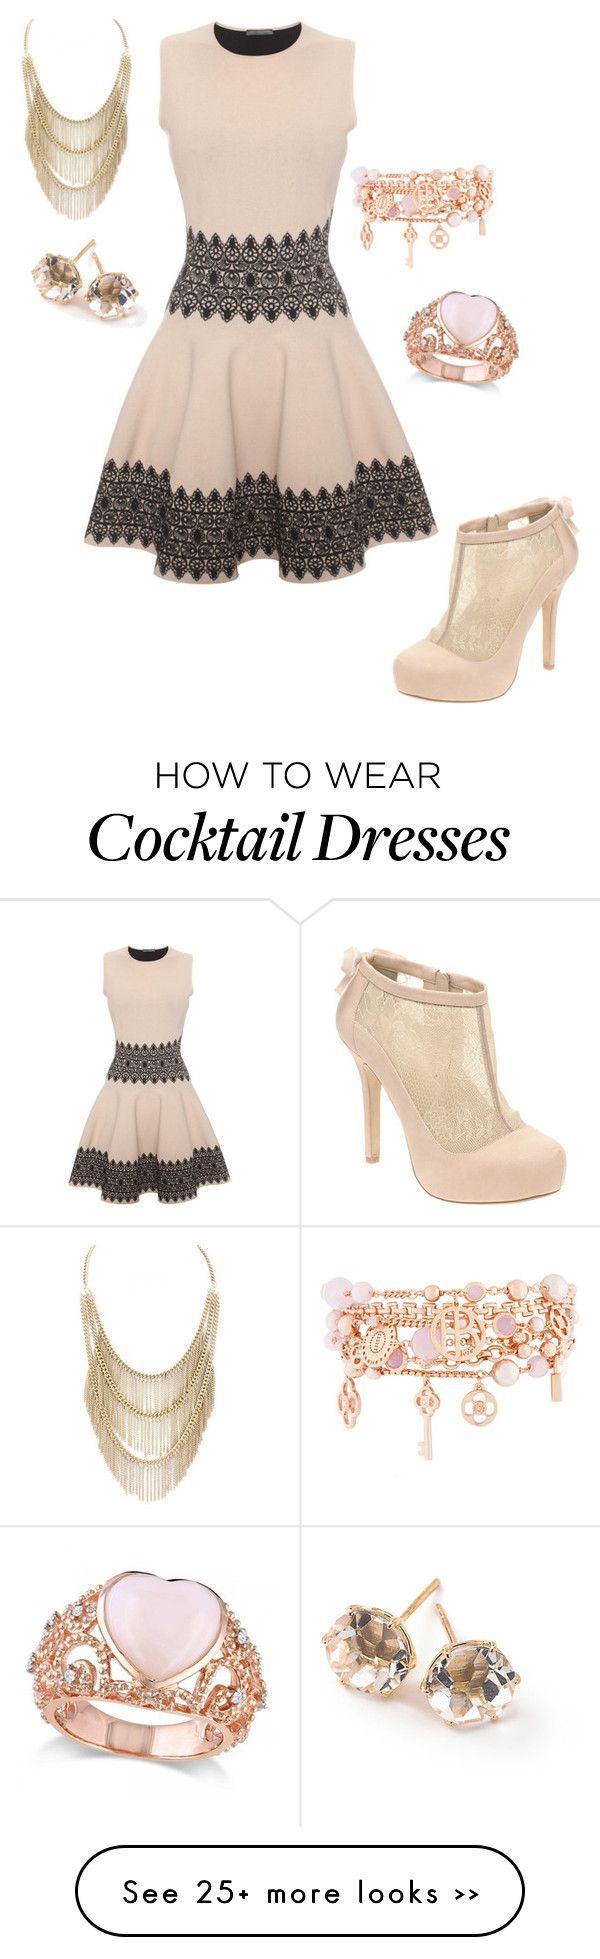 """Untitled #1623"" by jeffthekillerlover22 on Polyvore"